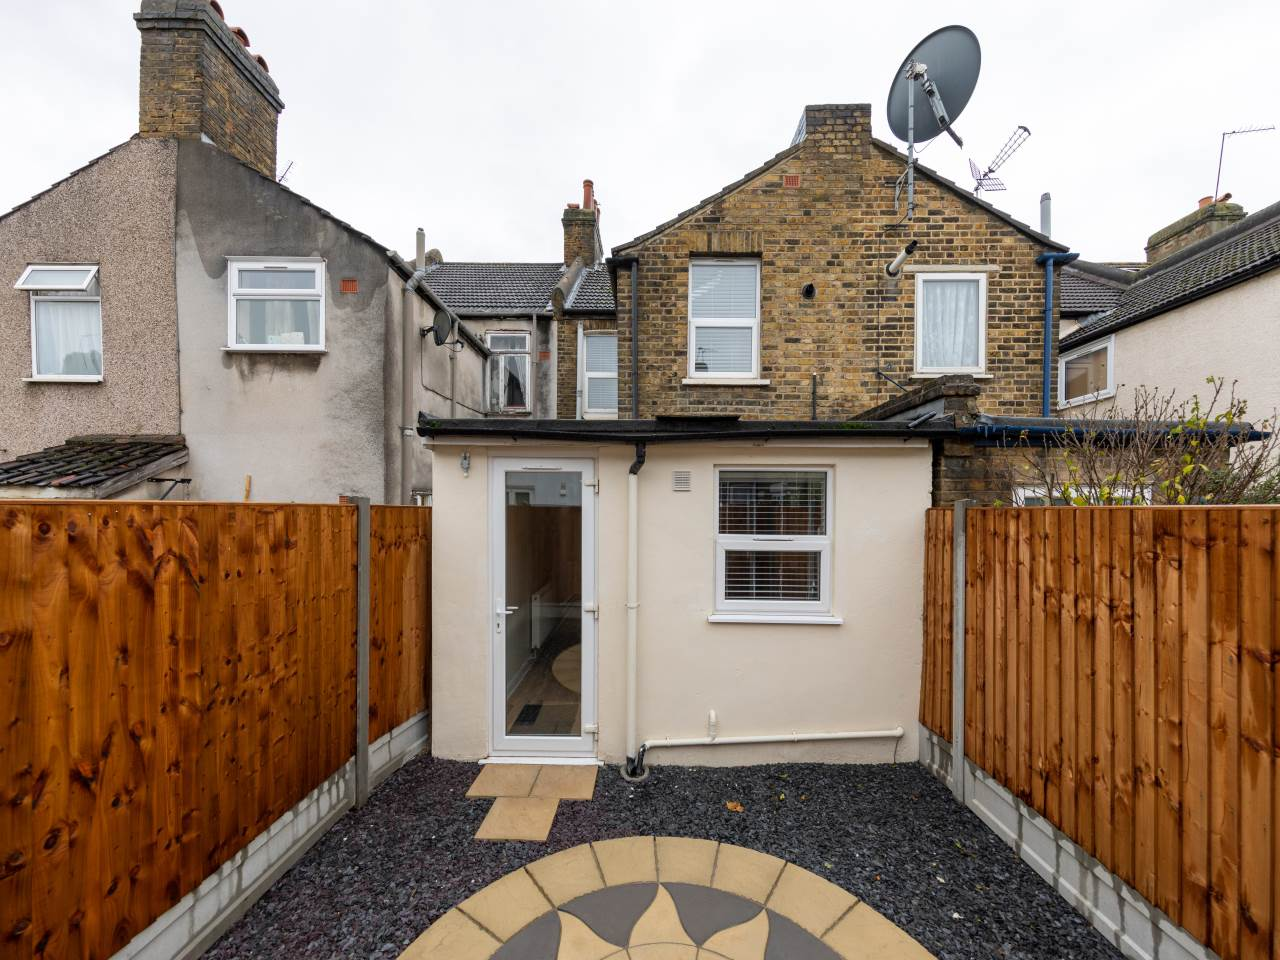 3 bed house for sale in Exning Road , Canning Town  14